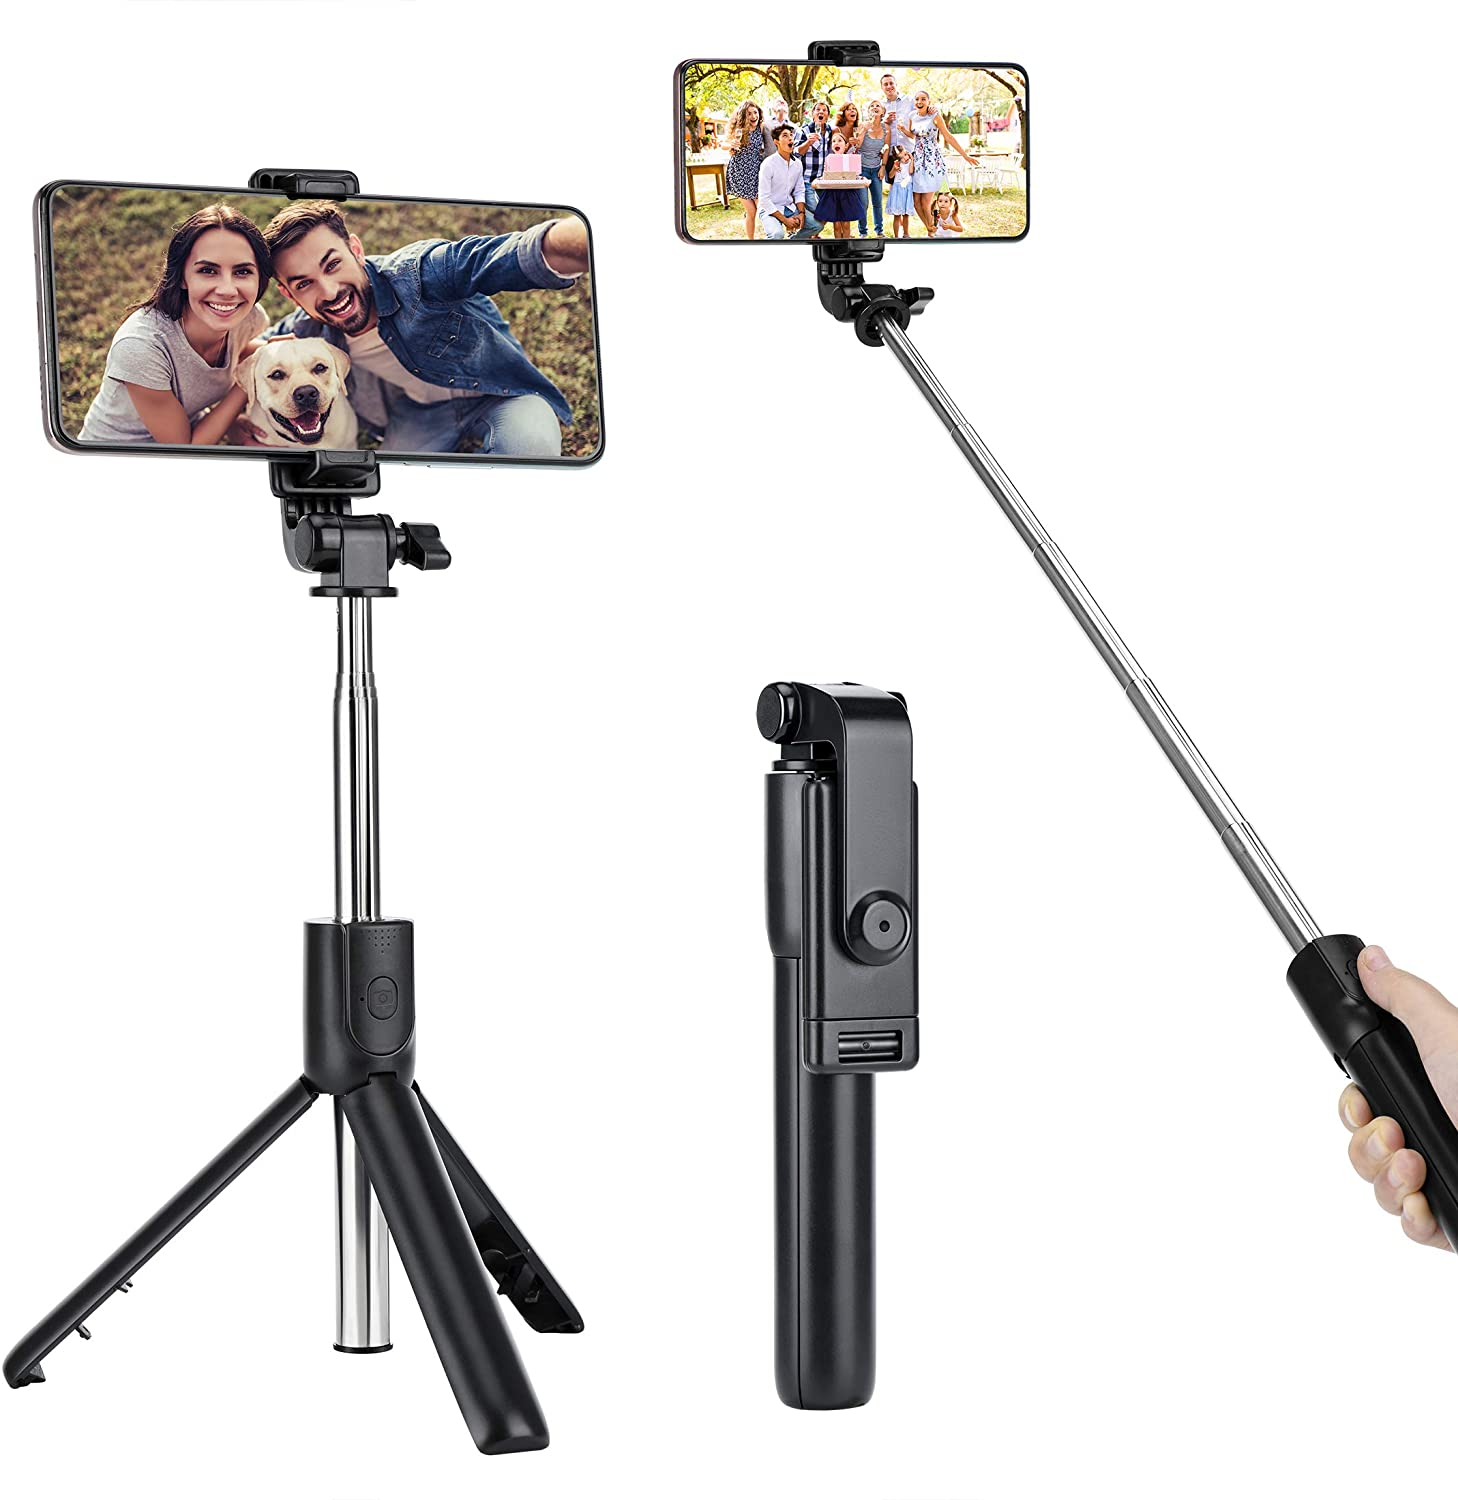 All in One Extendable Tripod Stand with Bluetooth Remote 360/° Rotation for iPhone 12 11 Pro Max XS X XR 8 Plus Android Smartphones ATUMTEK 51 Selfie Stick Tripod Samsung S10 S10+ S9 S8